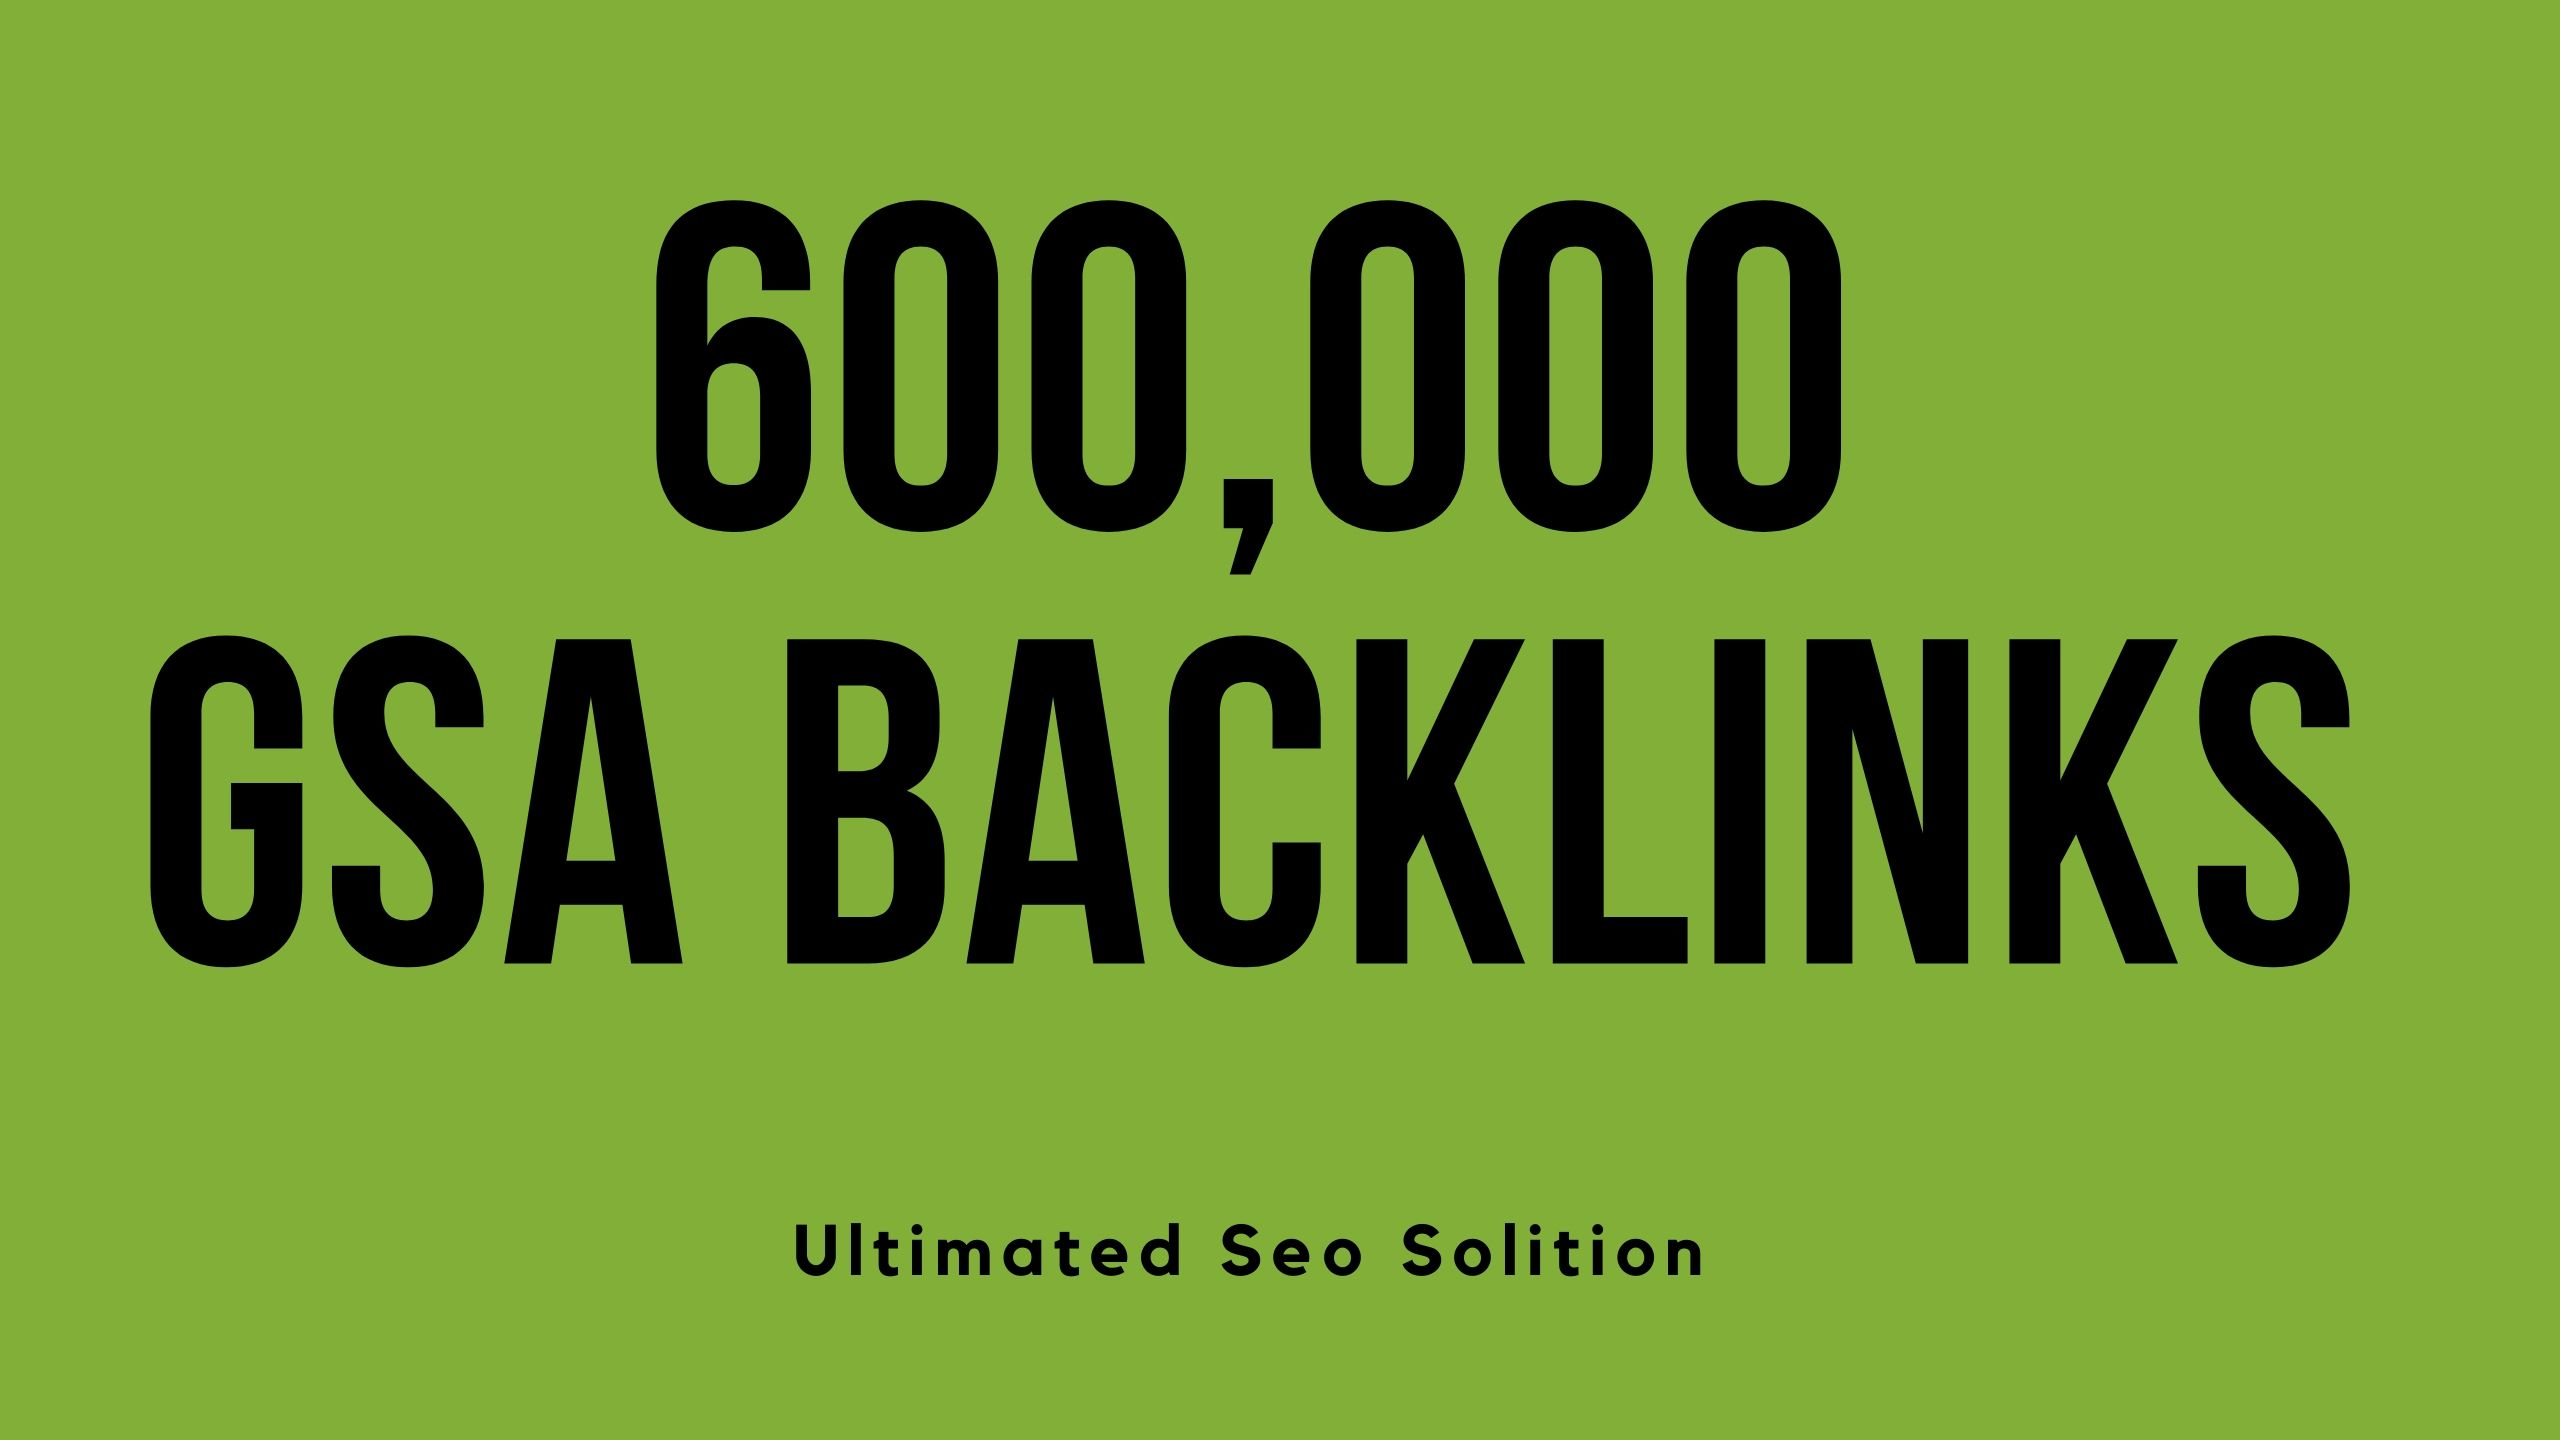 I will build 600,000 GSA Backlinks for faster ranking on google and your web page